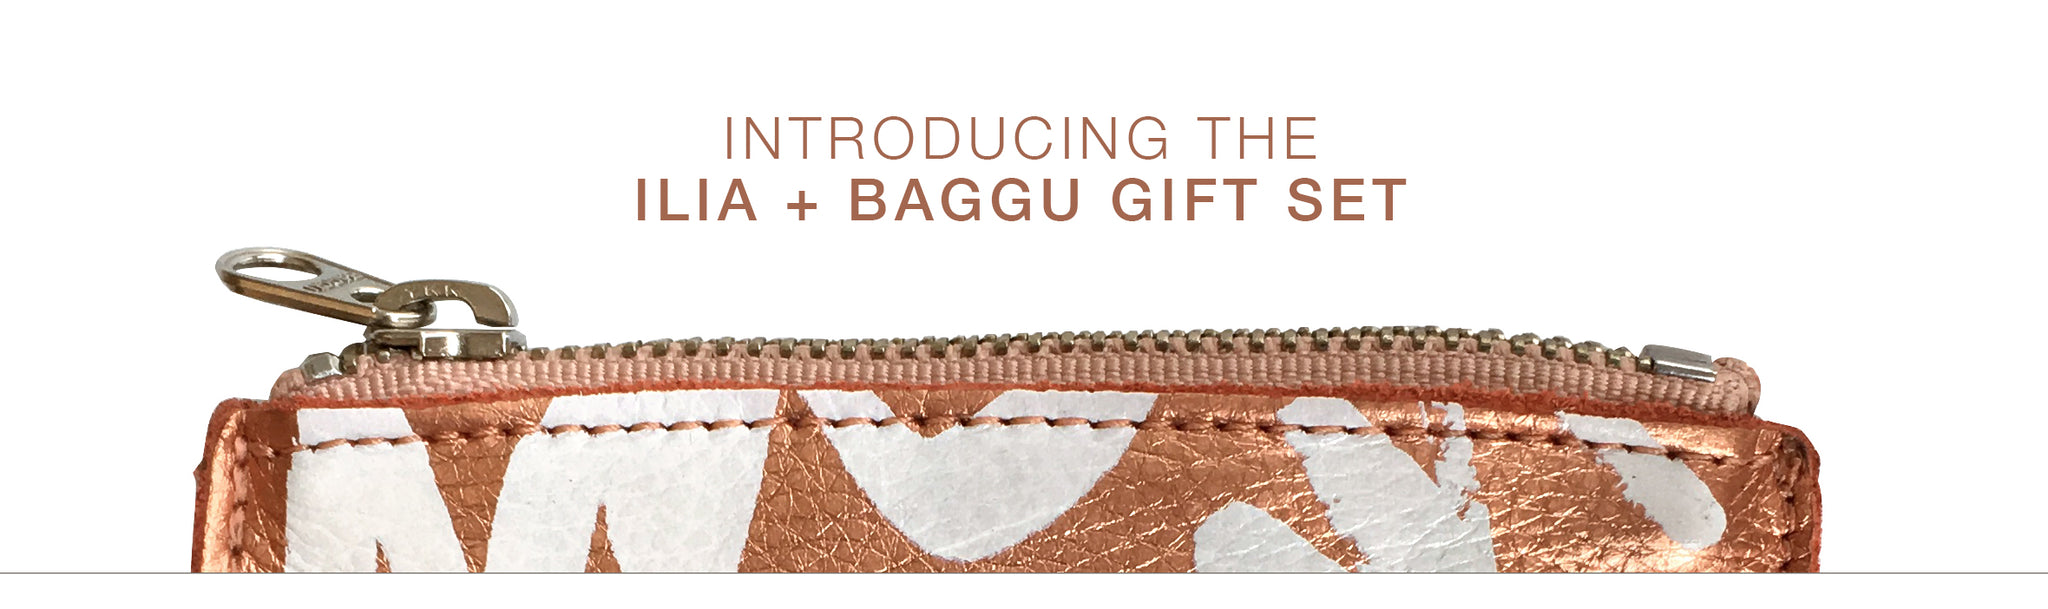 Introducing ILIA + BAGGU Limited Edition Gift Set